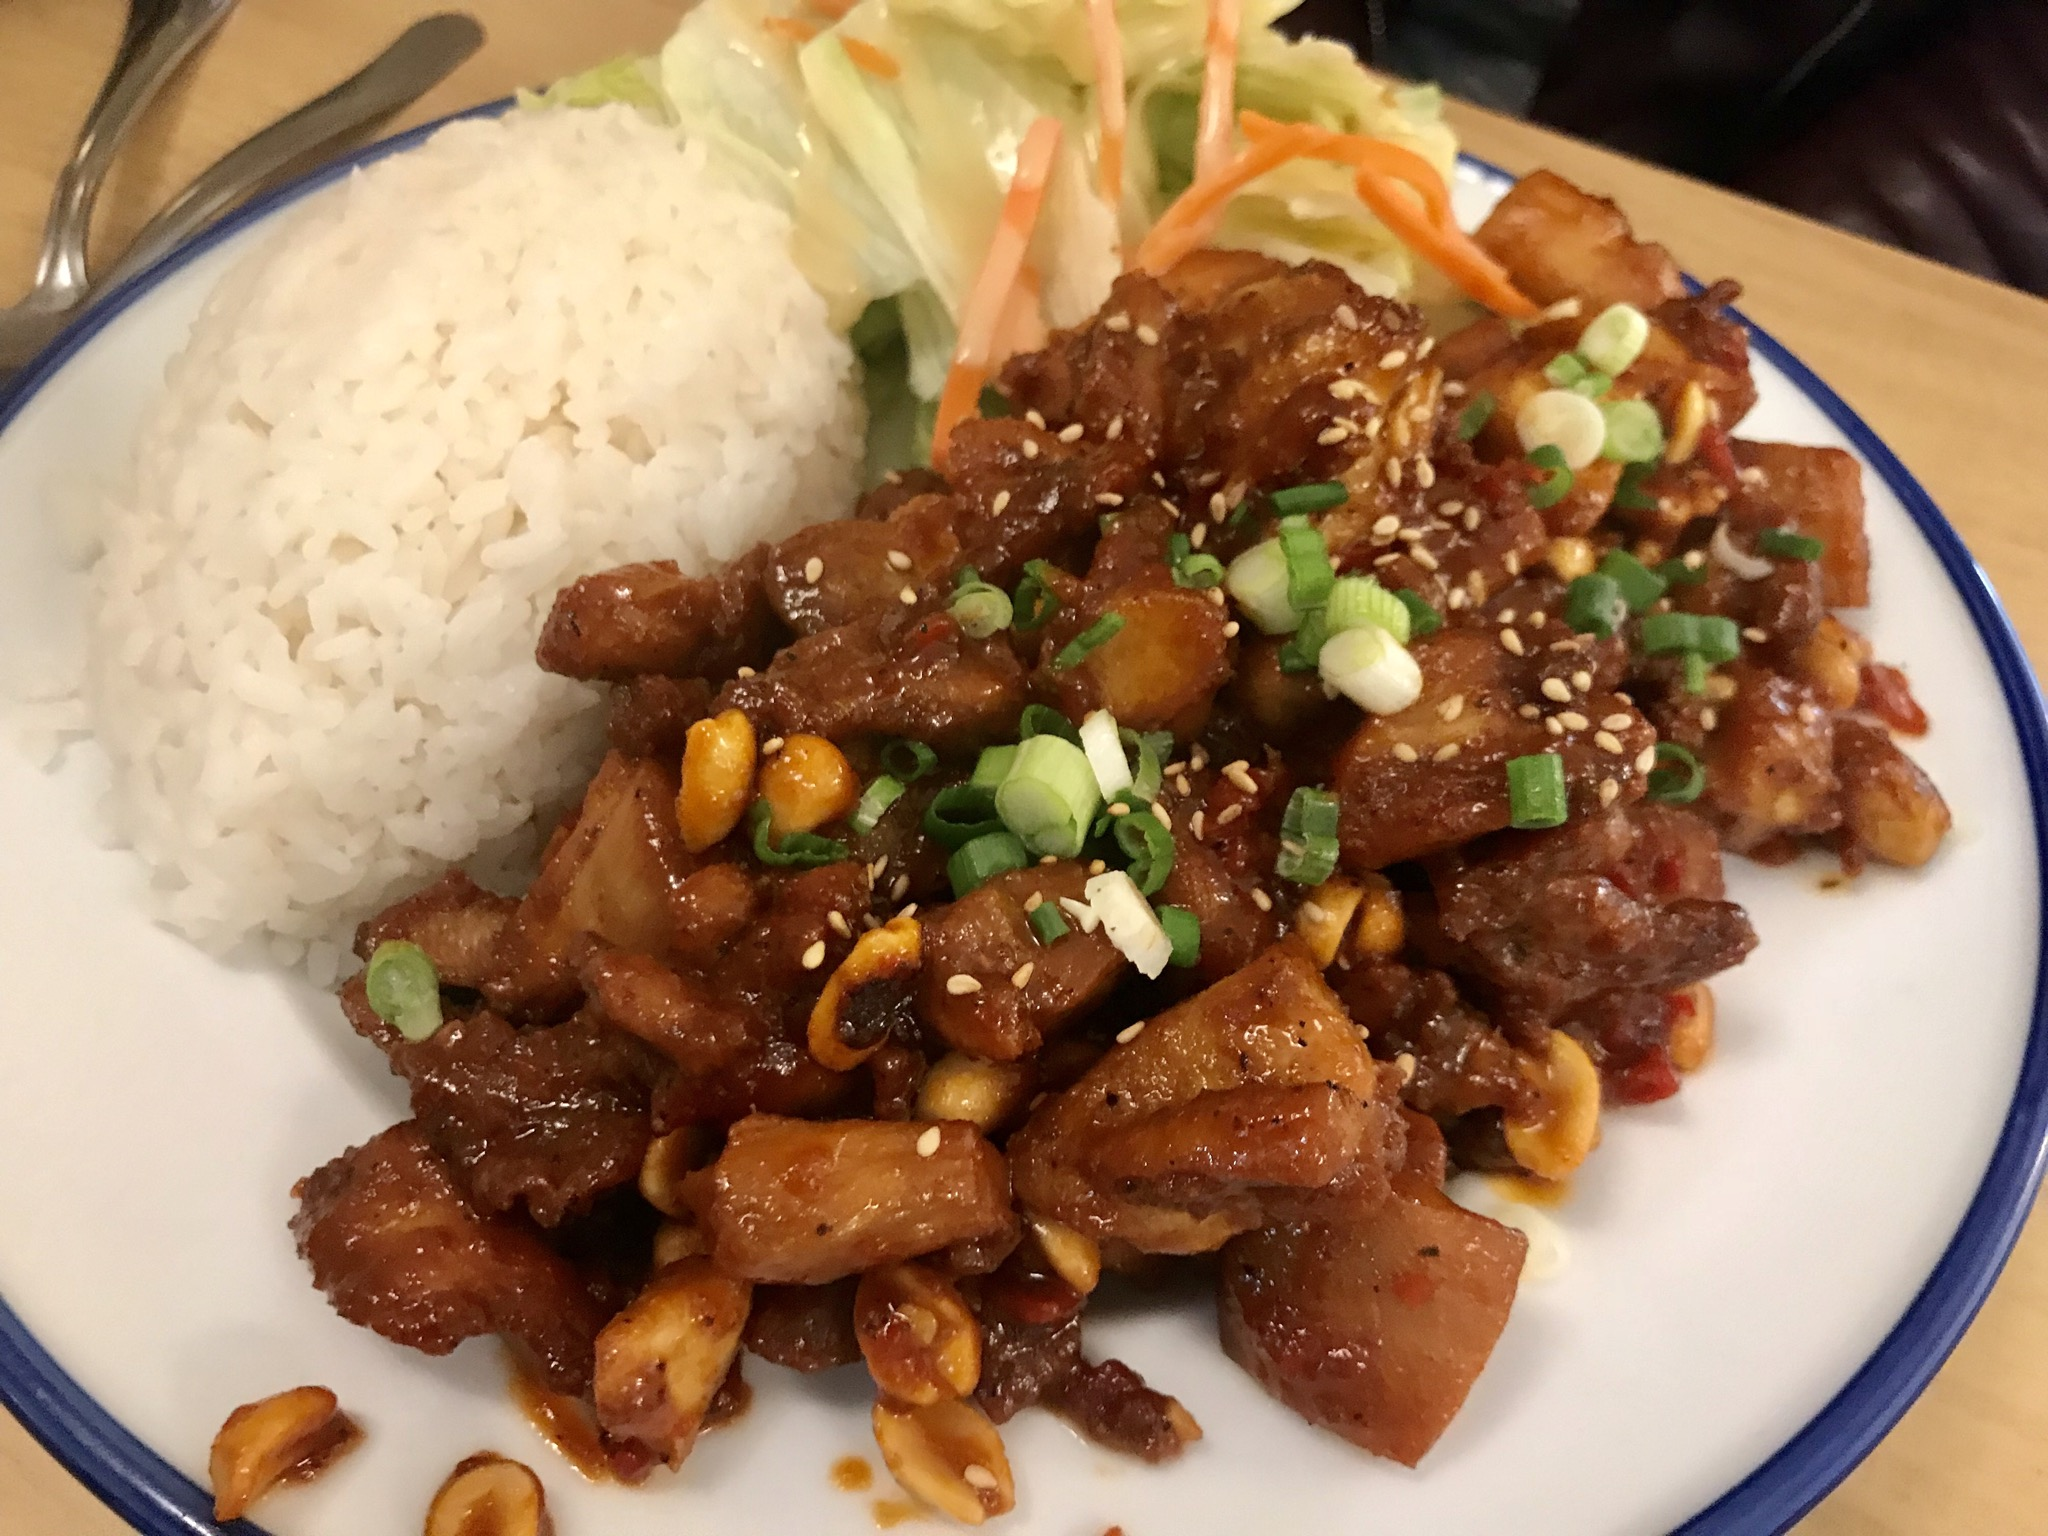 General Tzo's at Woo's Teriyaki in Richland – November 7 2018